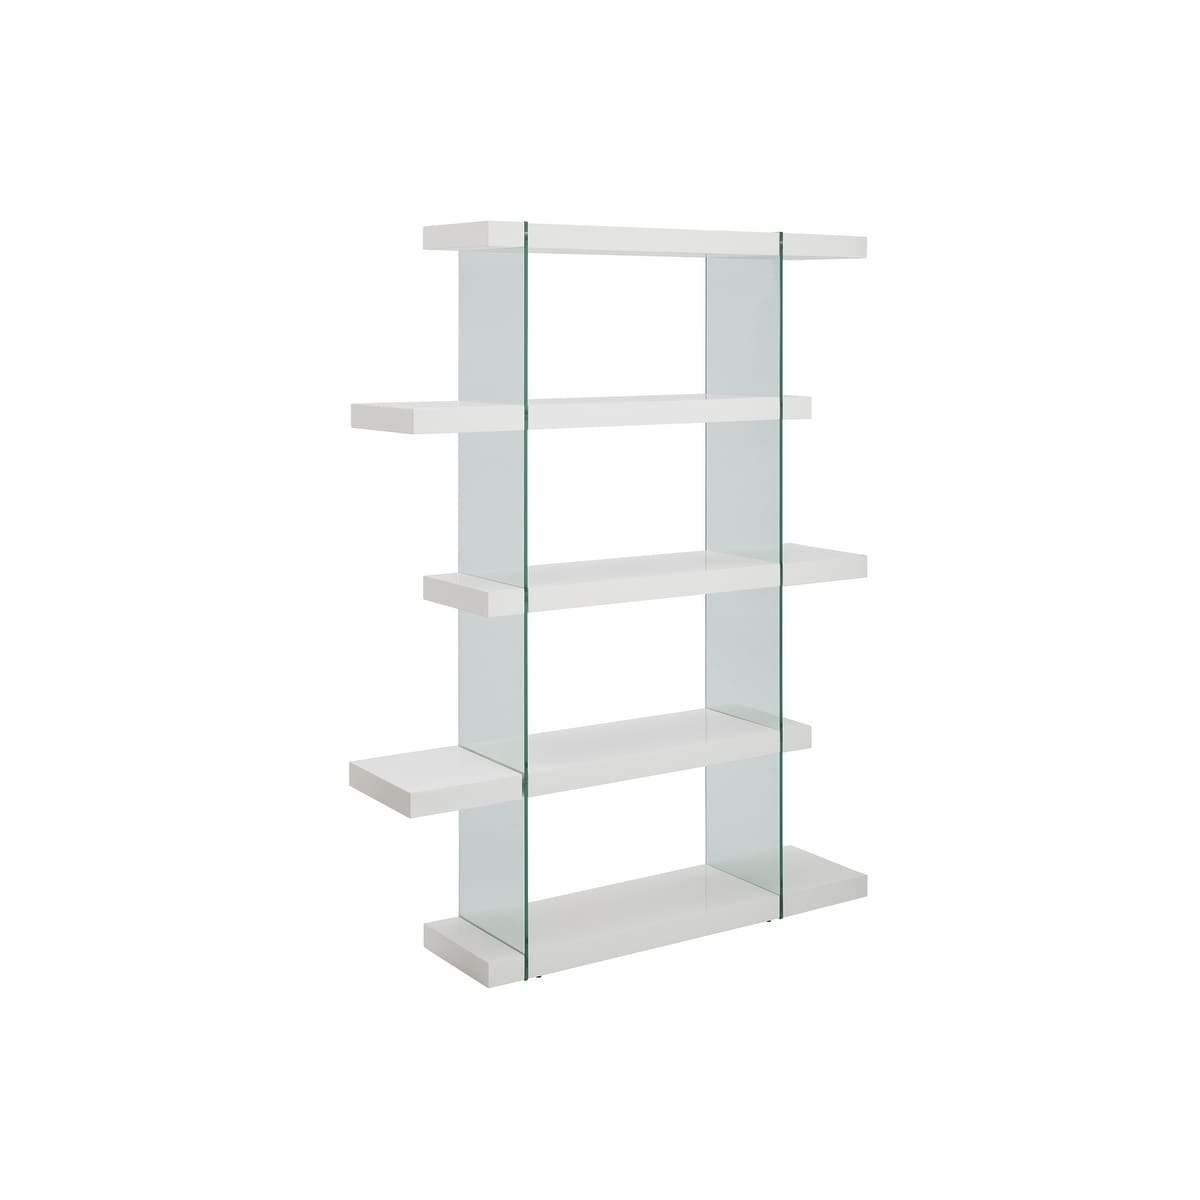 Il Vetro High Gloss White Lacquer Bookcase By Casabianca Home Free Shipping Today 19744091